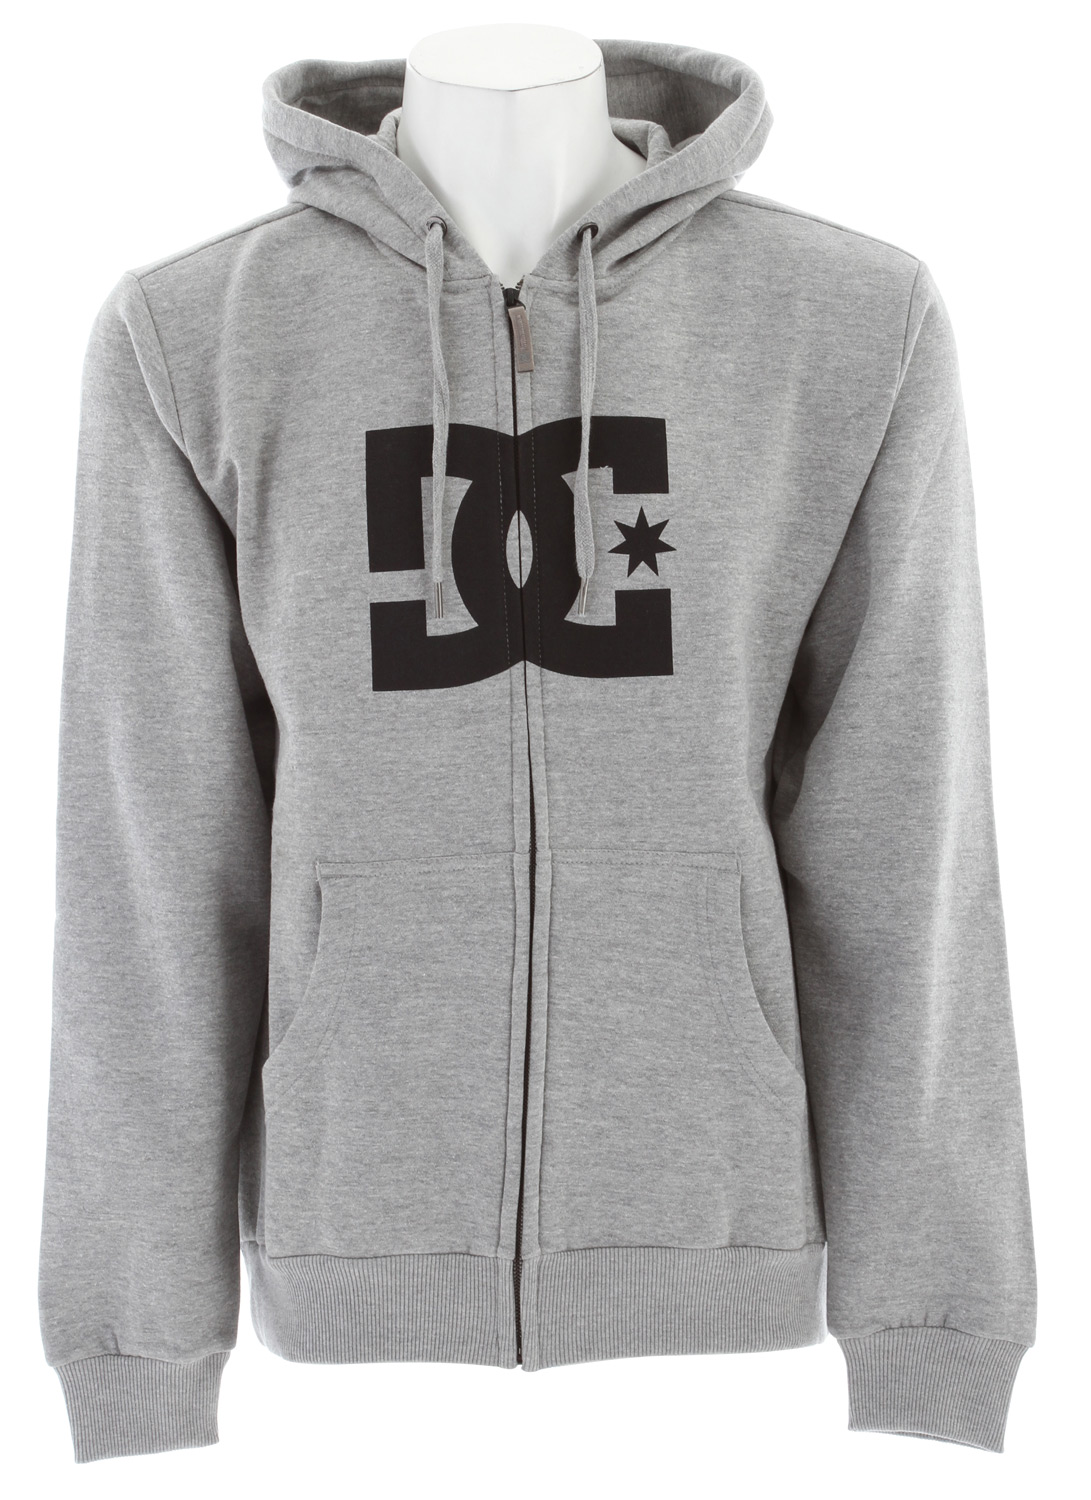 Skateboard Key Features of the DC Star ZH1 Hoodie: Standard Fleece Fullzip with softhand plastisol print at chest Custom trim package 80/20 cotton poly zip fleece - $35.95